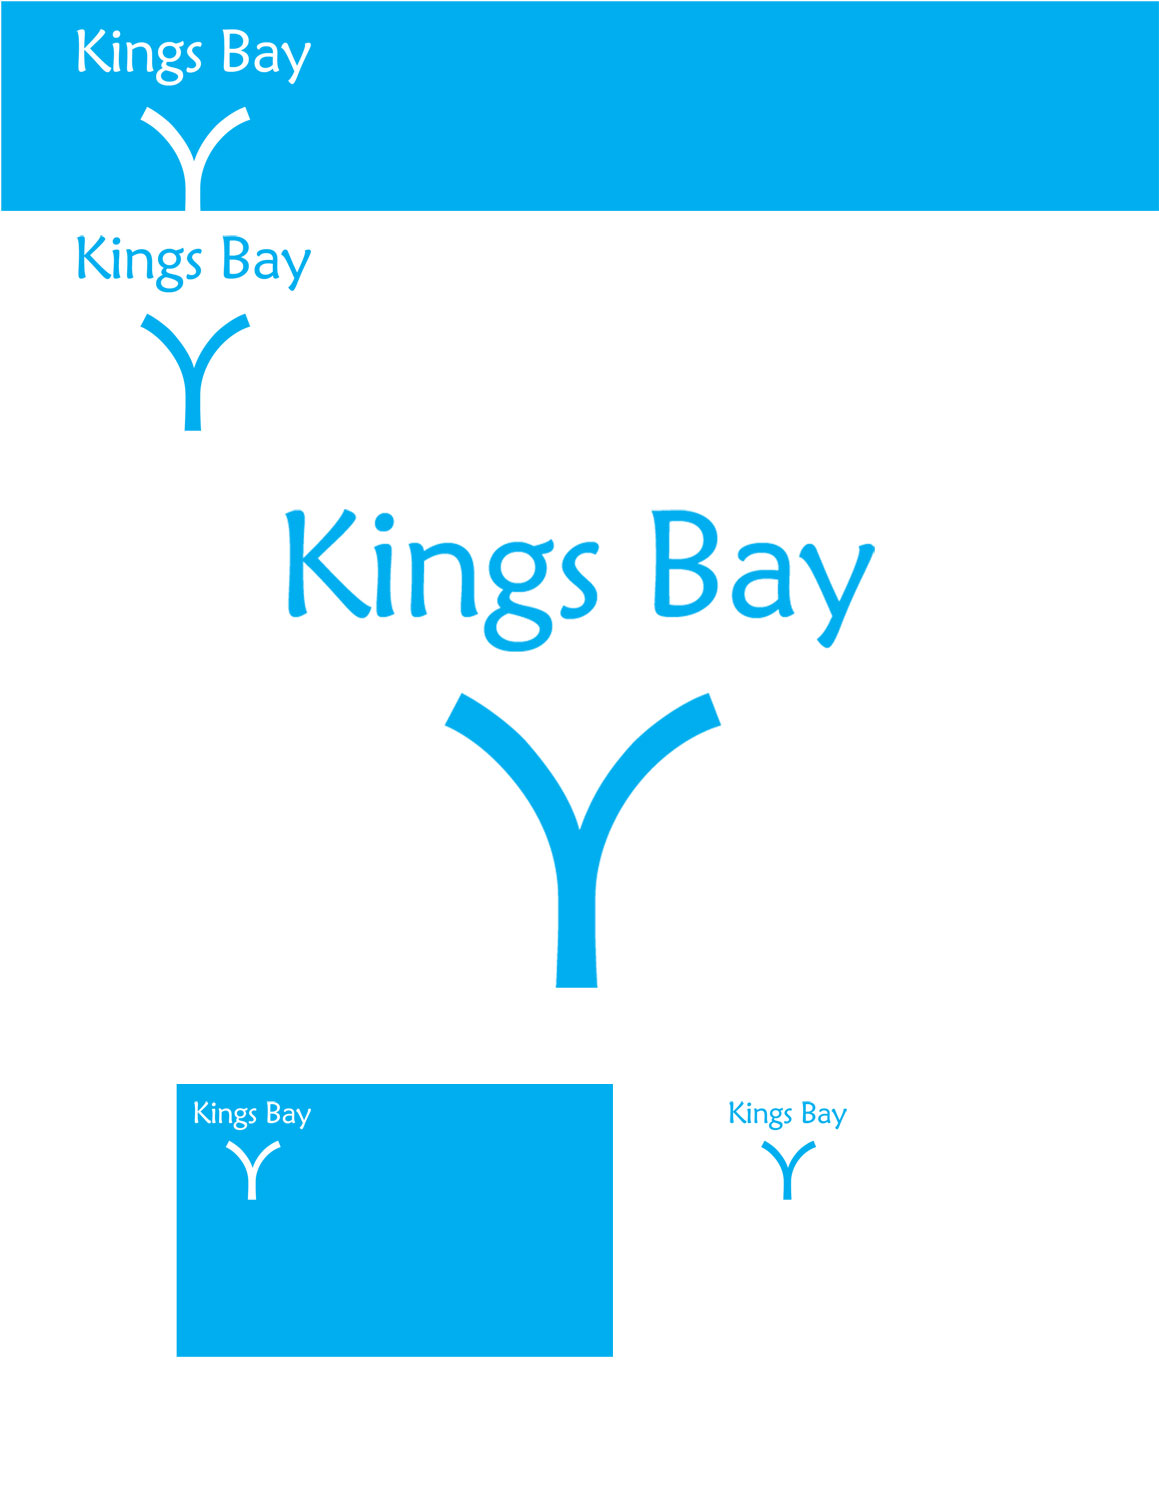 kings bay single men Meet gorgeous kings bay single military men now chat live through video chat and im get to know soldiers nearby or proudly serving abroad.